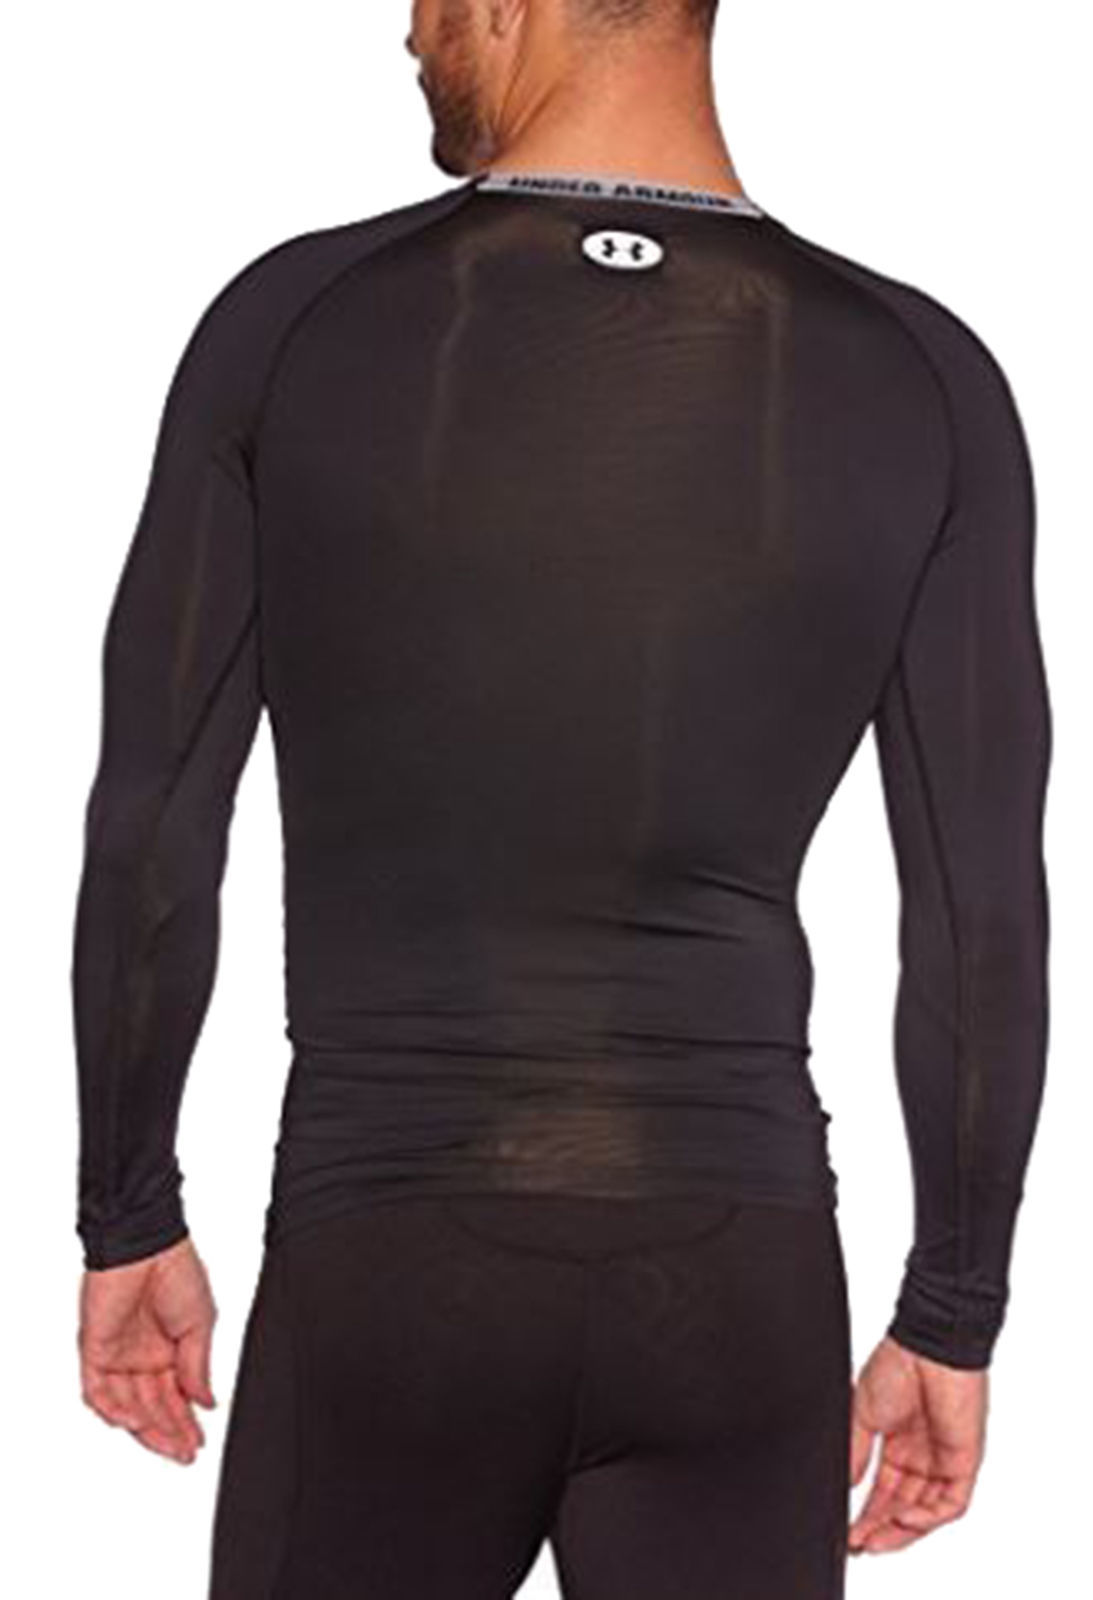 Under Armour Heat Gear Sonic Compression Long Sleeve Top - Small - Black